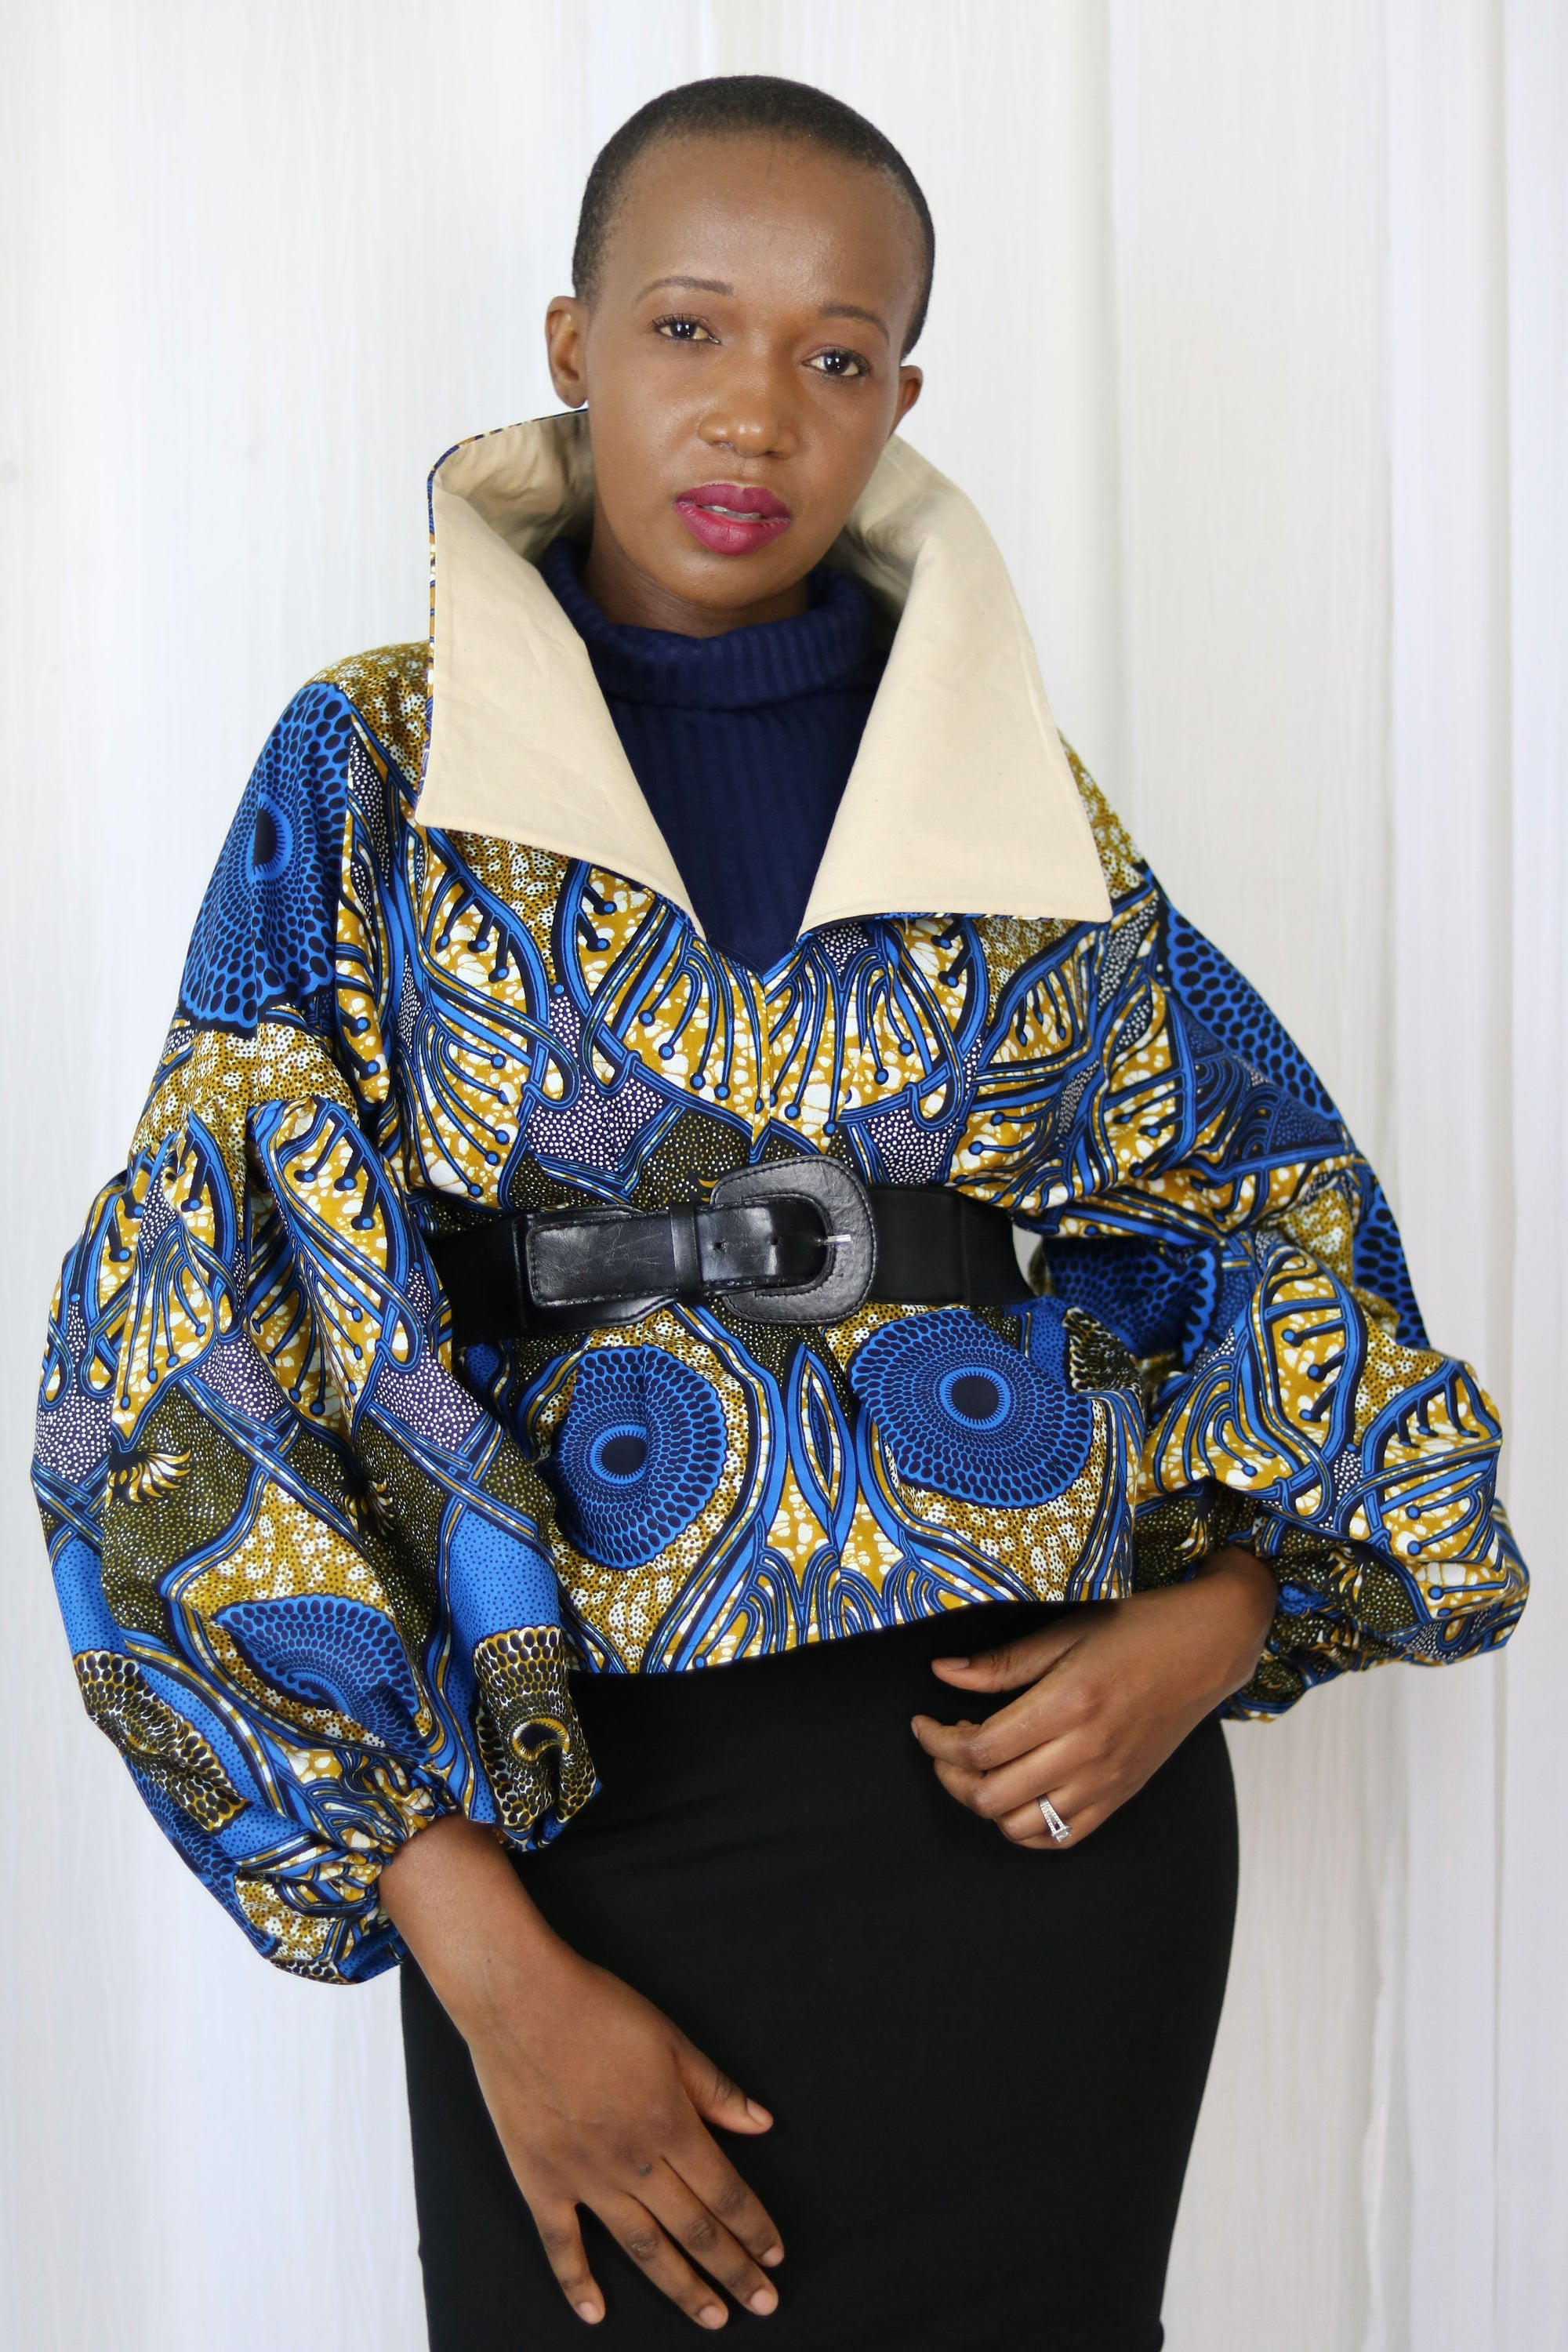 AFRICAN PRINT /ANKARA HIGH COLLAR FALL TOP - ROYAL BLUE,/BAIGE FLORAL PRINT